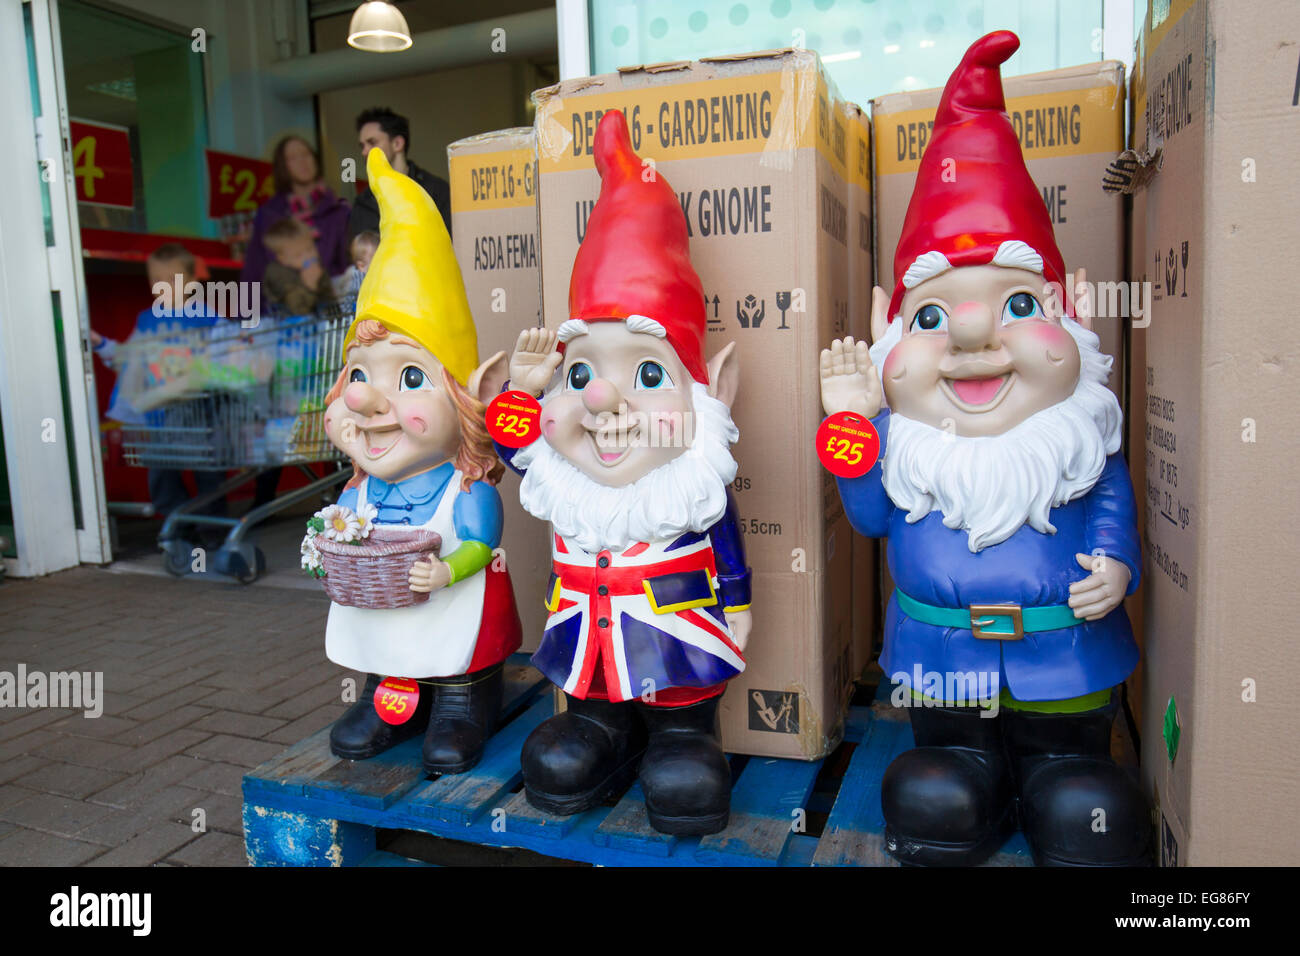 Giant Garden Gnomes On Sale At Asada Kendal Stock Photo 78856735